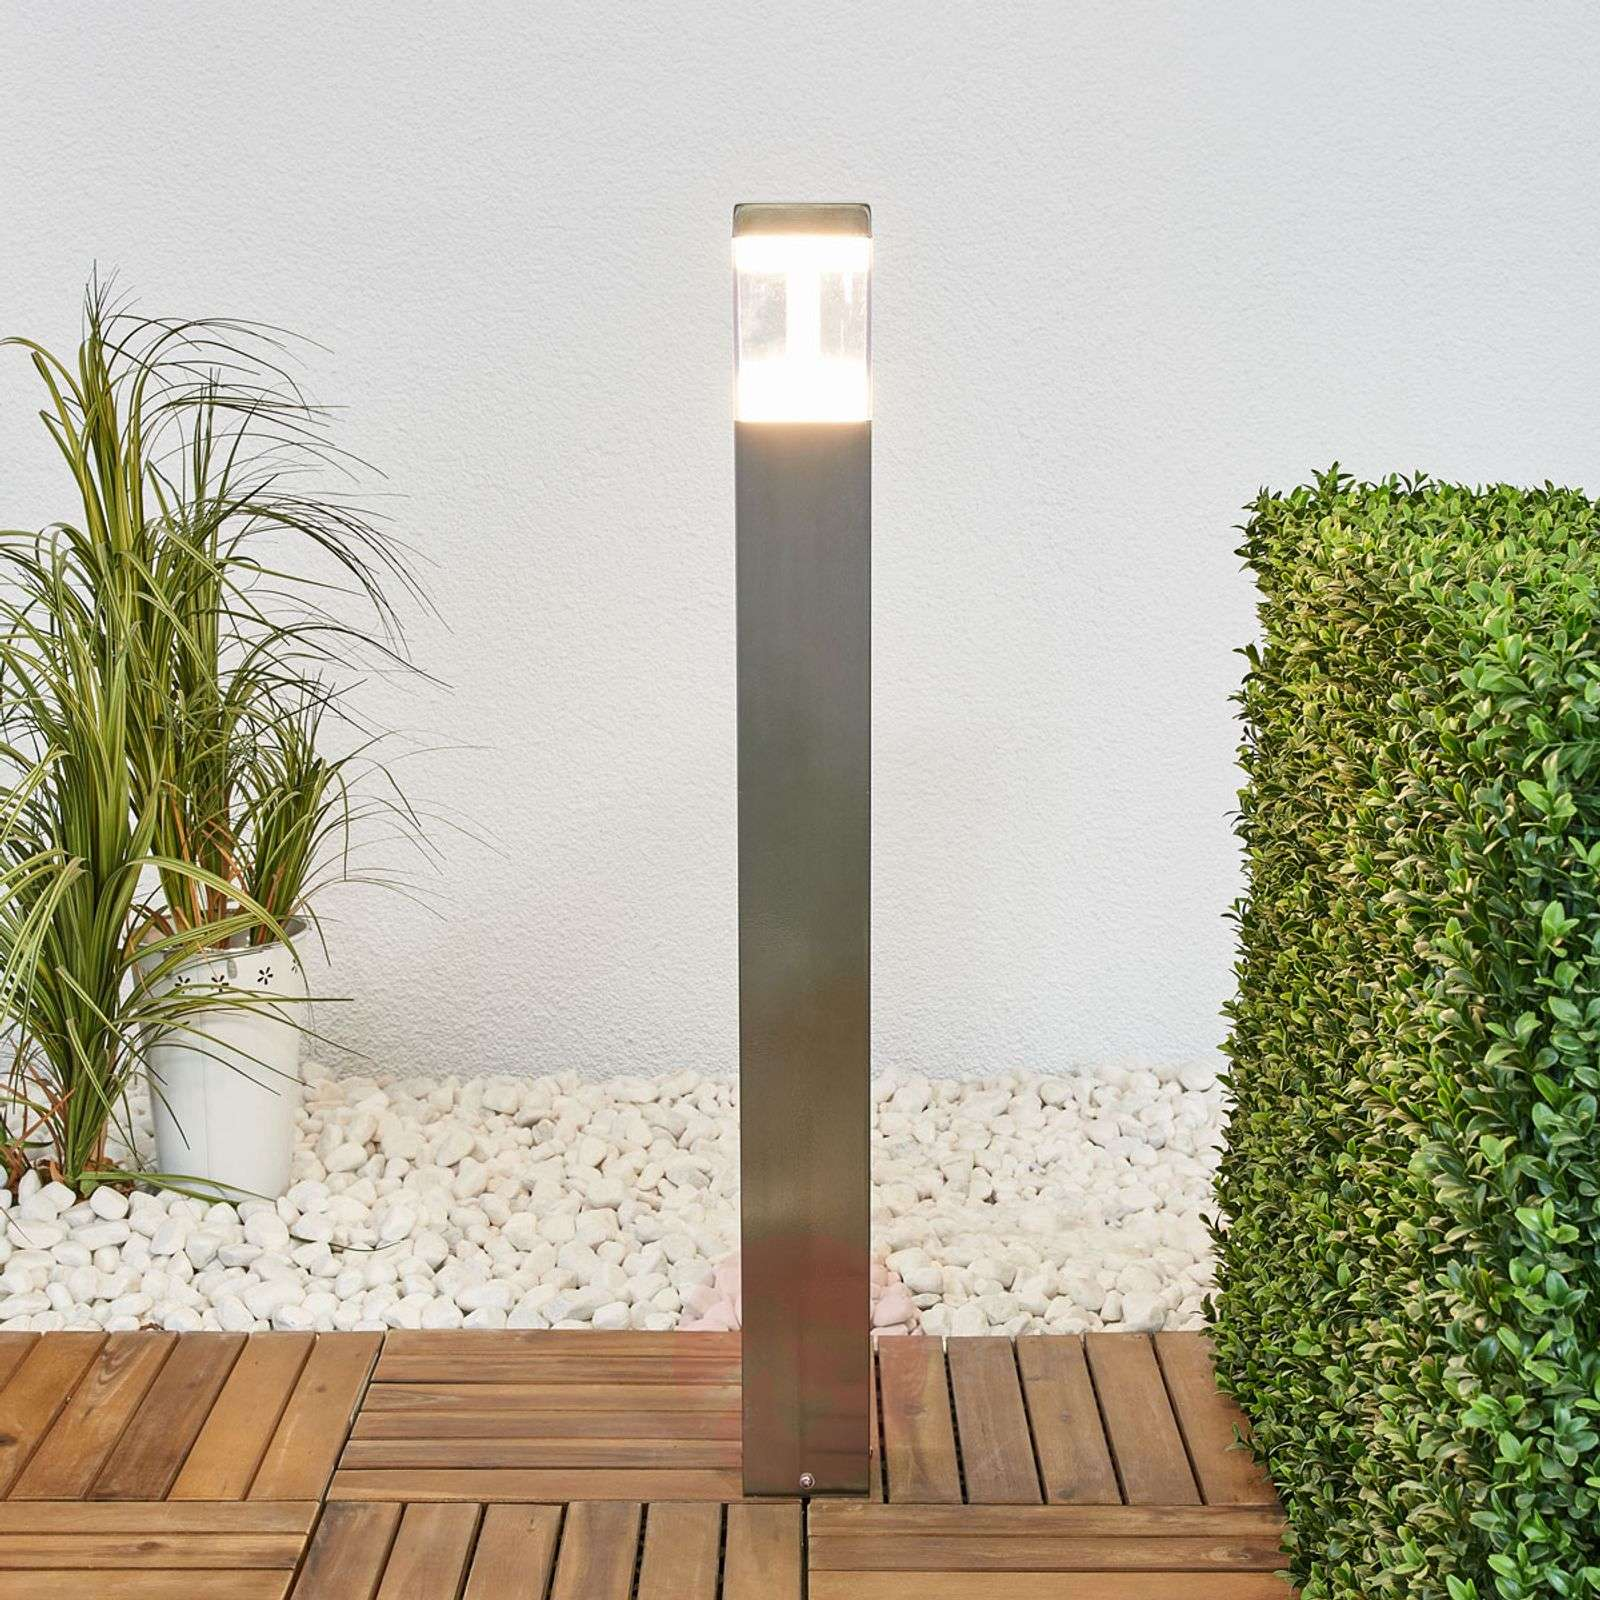 Baily stainless steel path light with LEDs-9988147-01